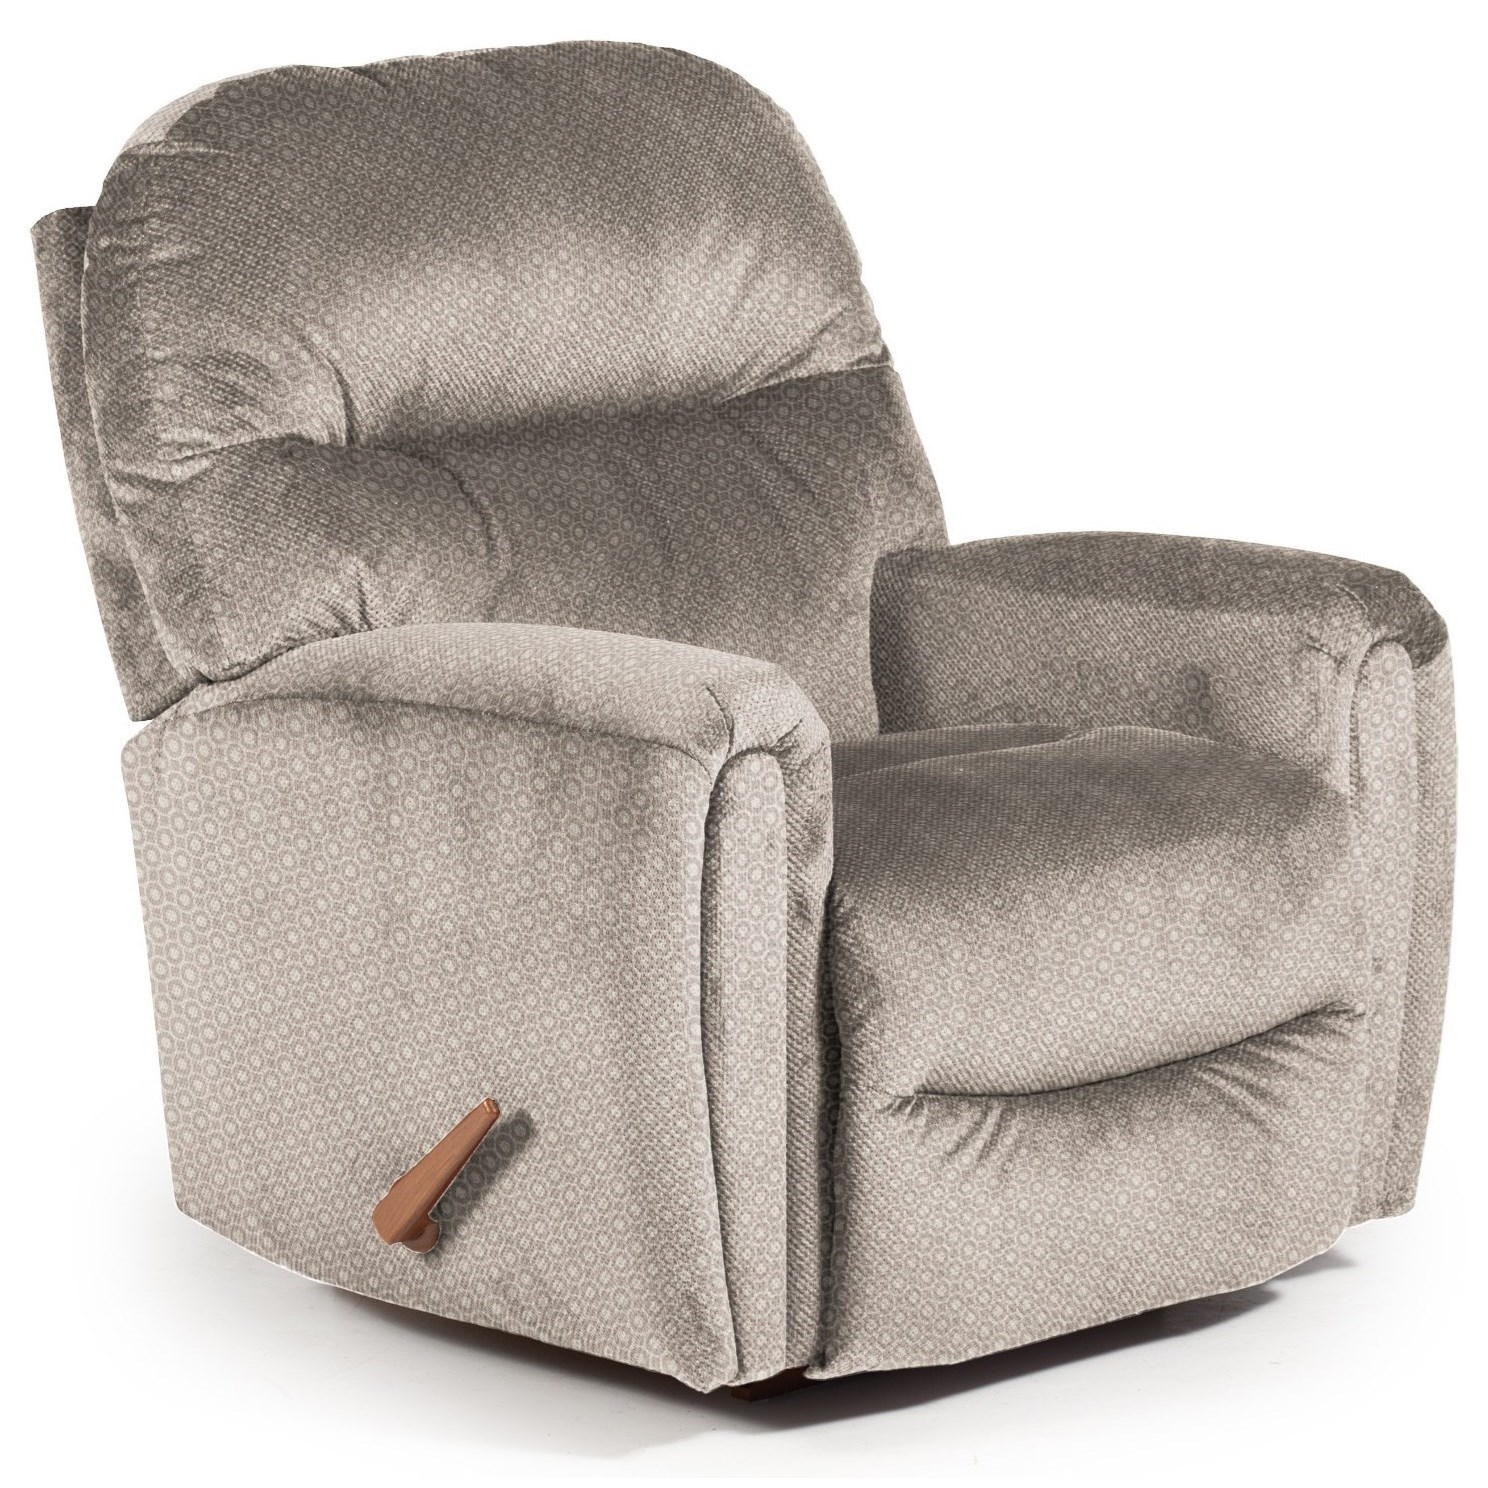 Best Home Furnishings Recliners - Medium Markson Space Saver Recliner - Item Number: 110599587-28718